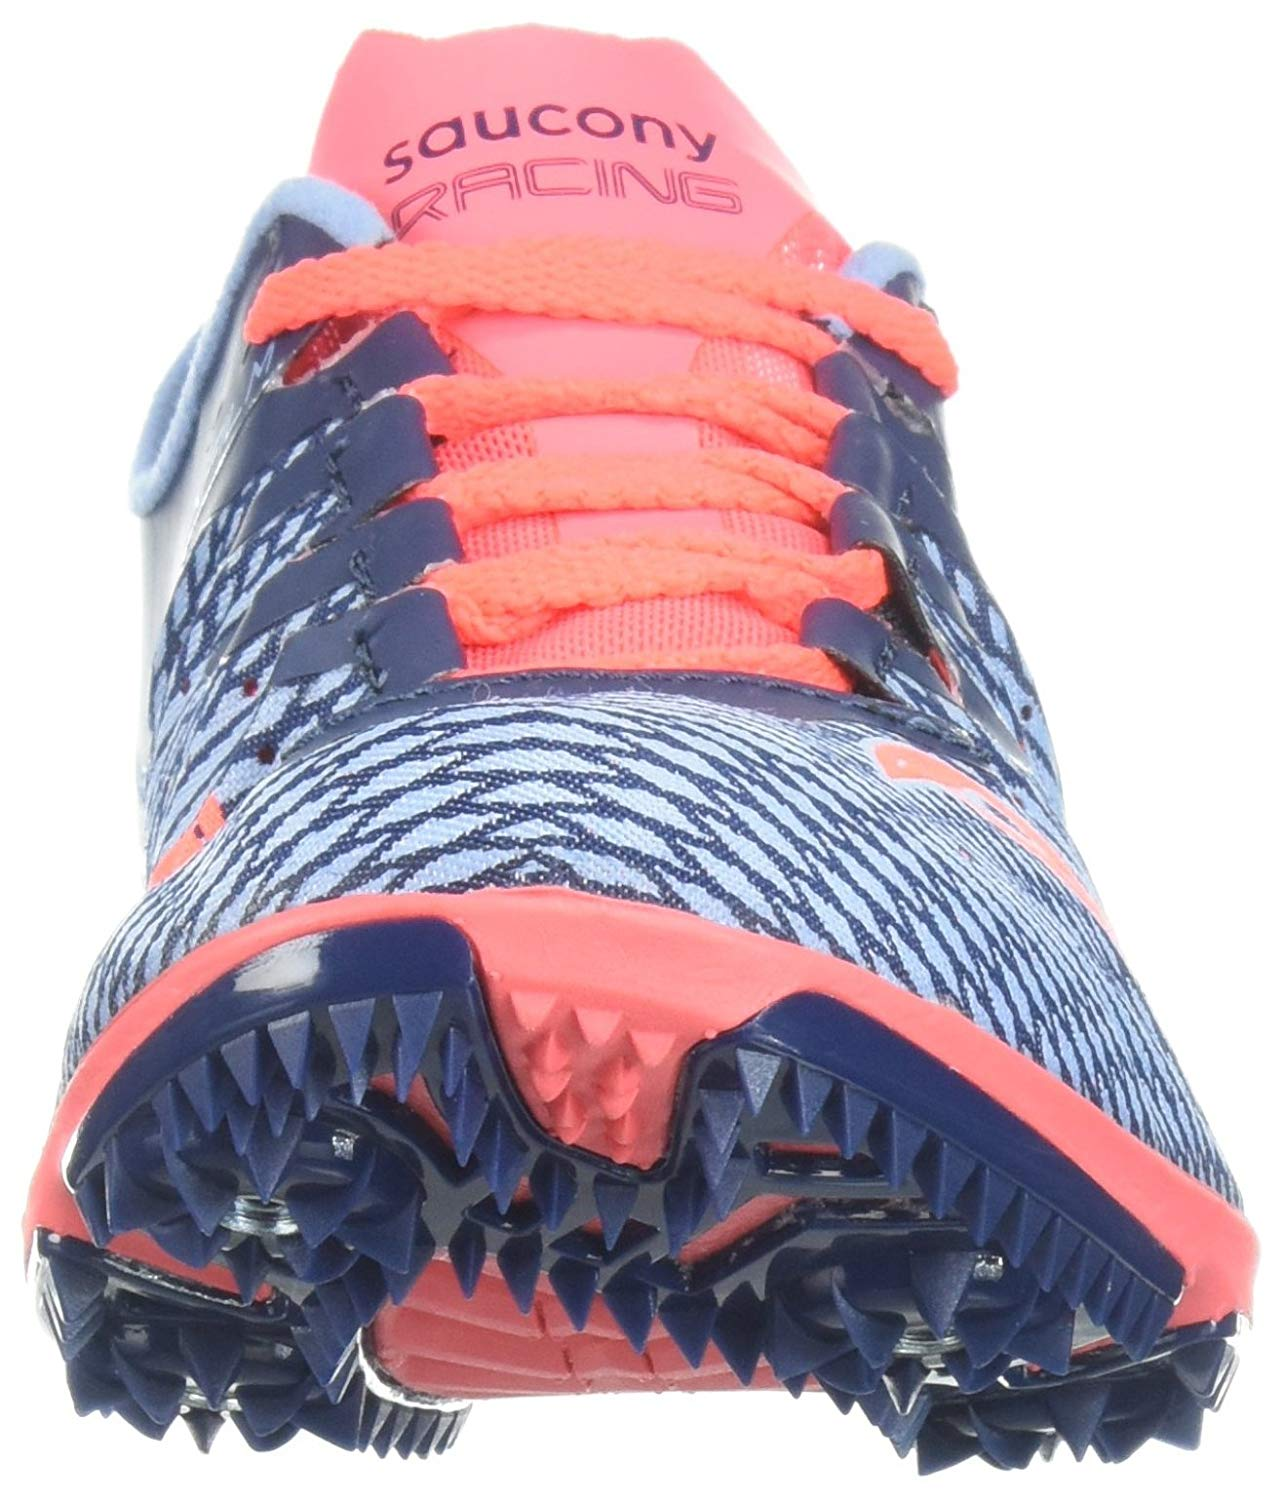 Saucony Women's Endorphin 2 Track And Shoe, Field Shoe, And a946e7